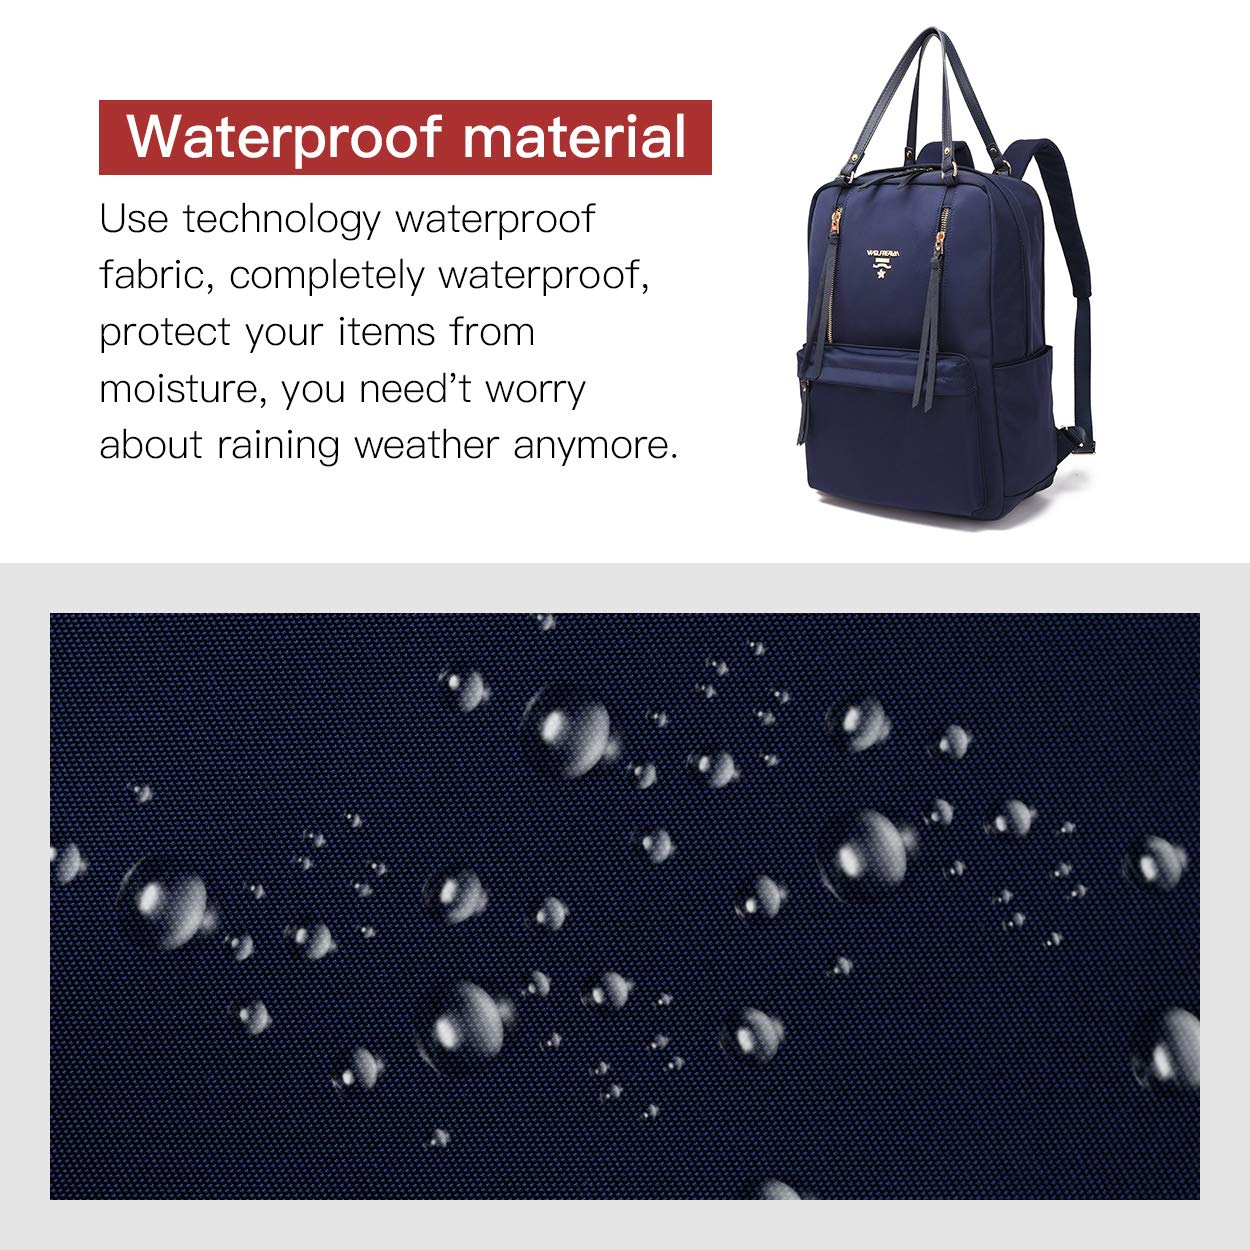 0328049a3113 Wolfrealm Laptop Backpacks for Women Lightweight Business Backpack Purse  Waterproof Travel Bags Fashion Ladies Notebook Bag (fit 14.1